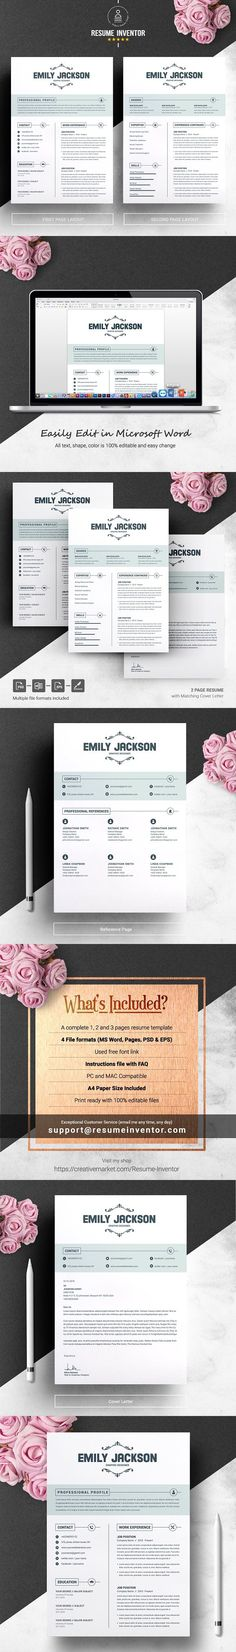 Resume Template CV Template 5 Page Resume Design Pinterest - resume 5 pages